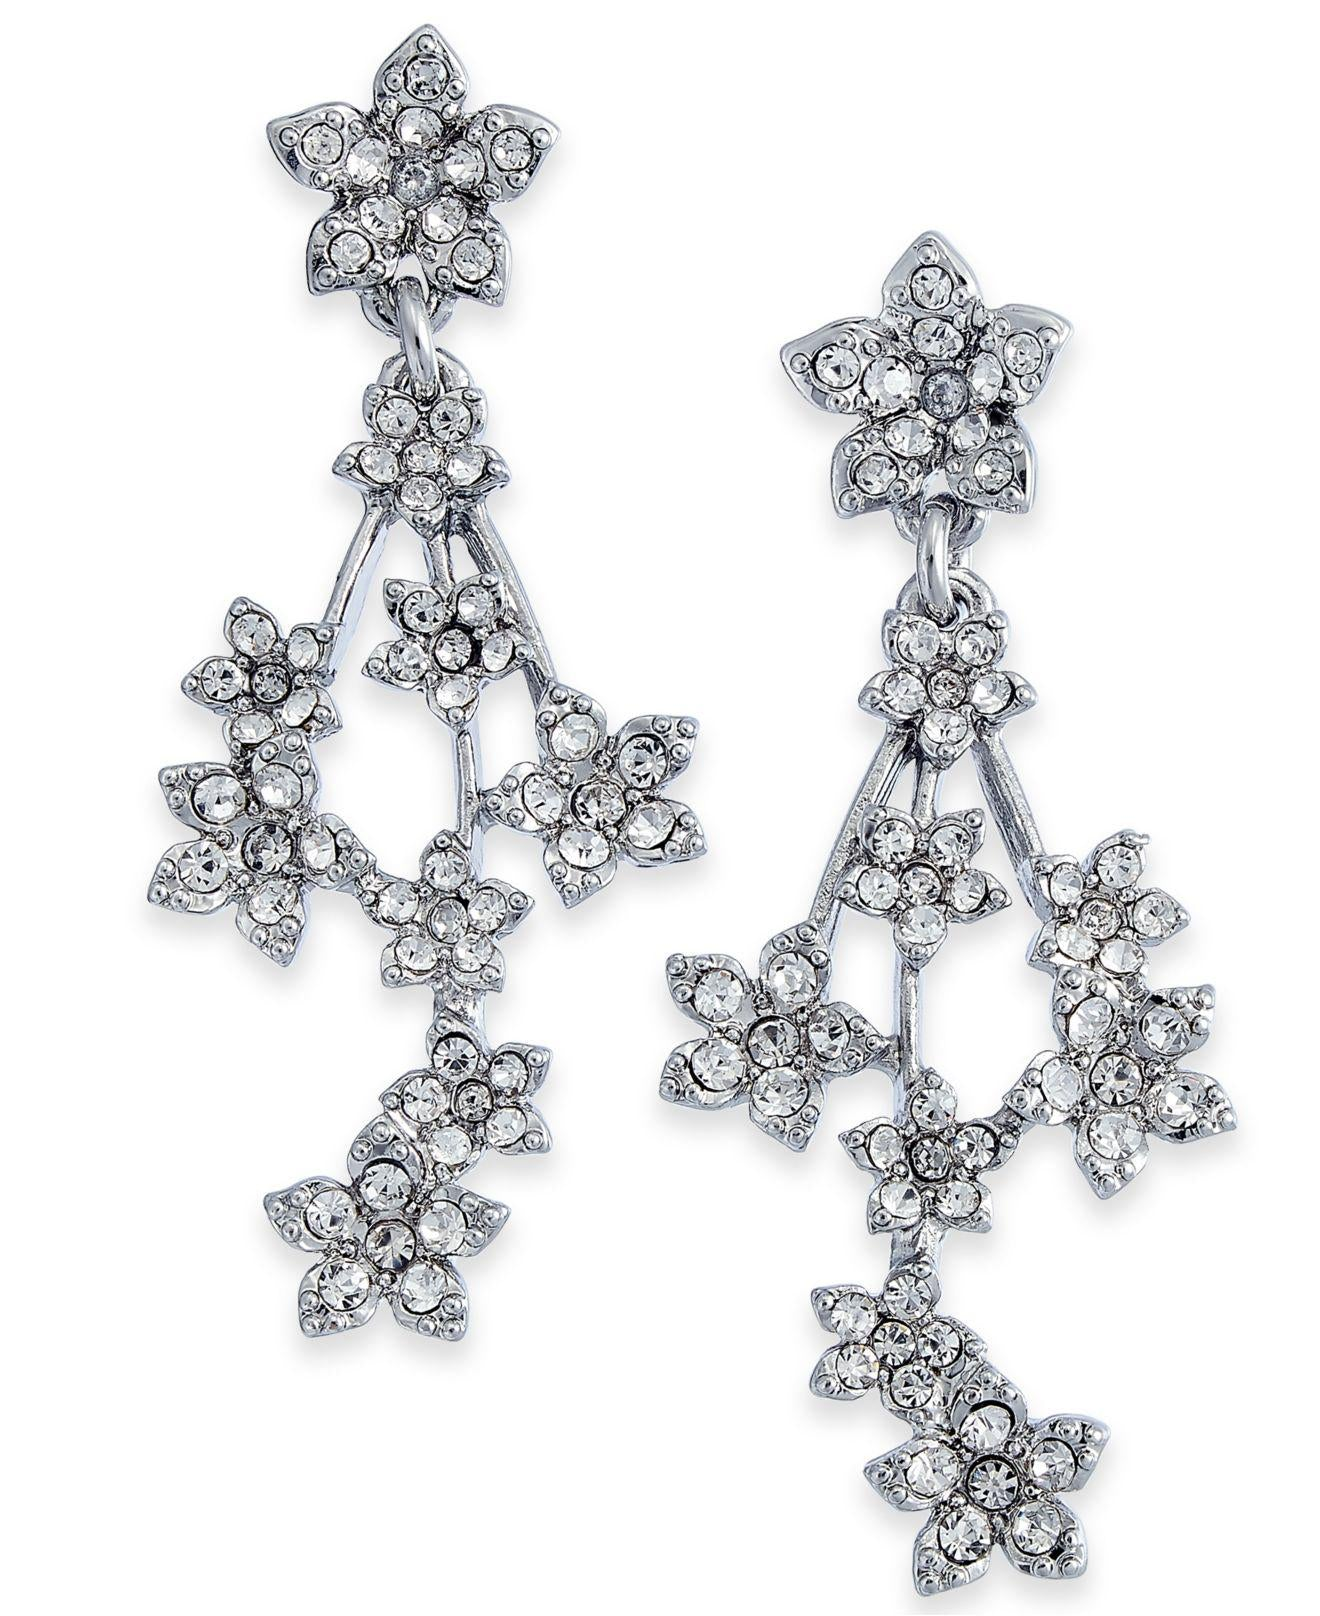 INC Silver-Tone Crystal Flower Cluster Linear Drop Earrings